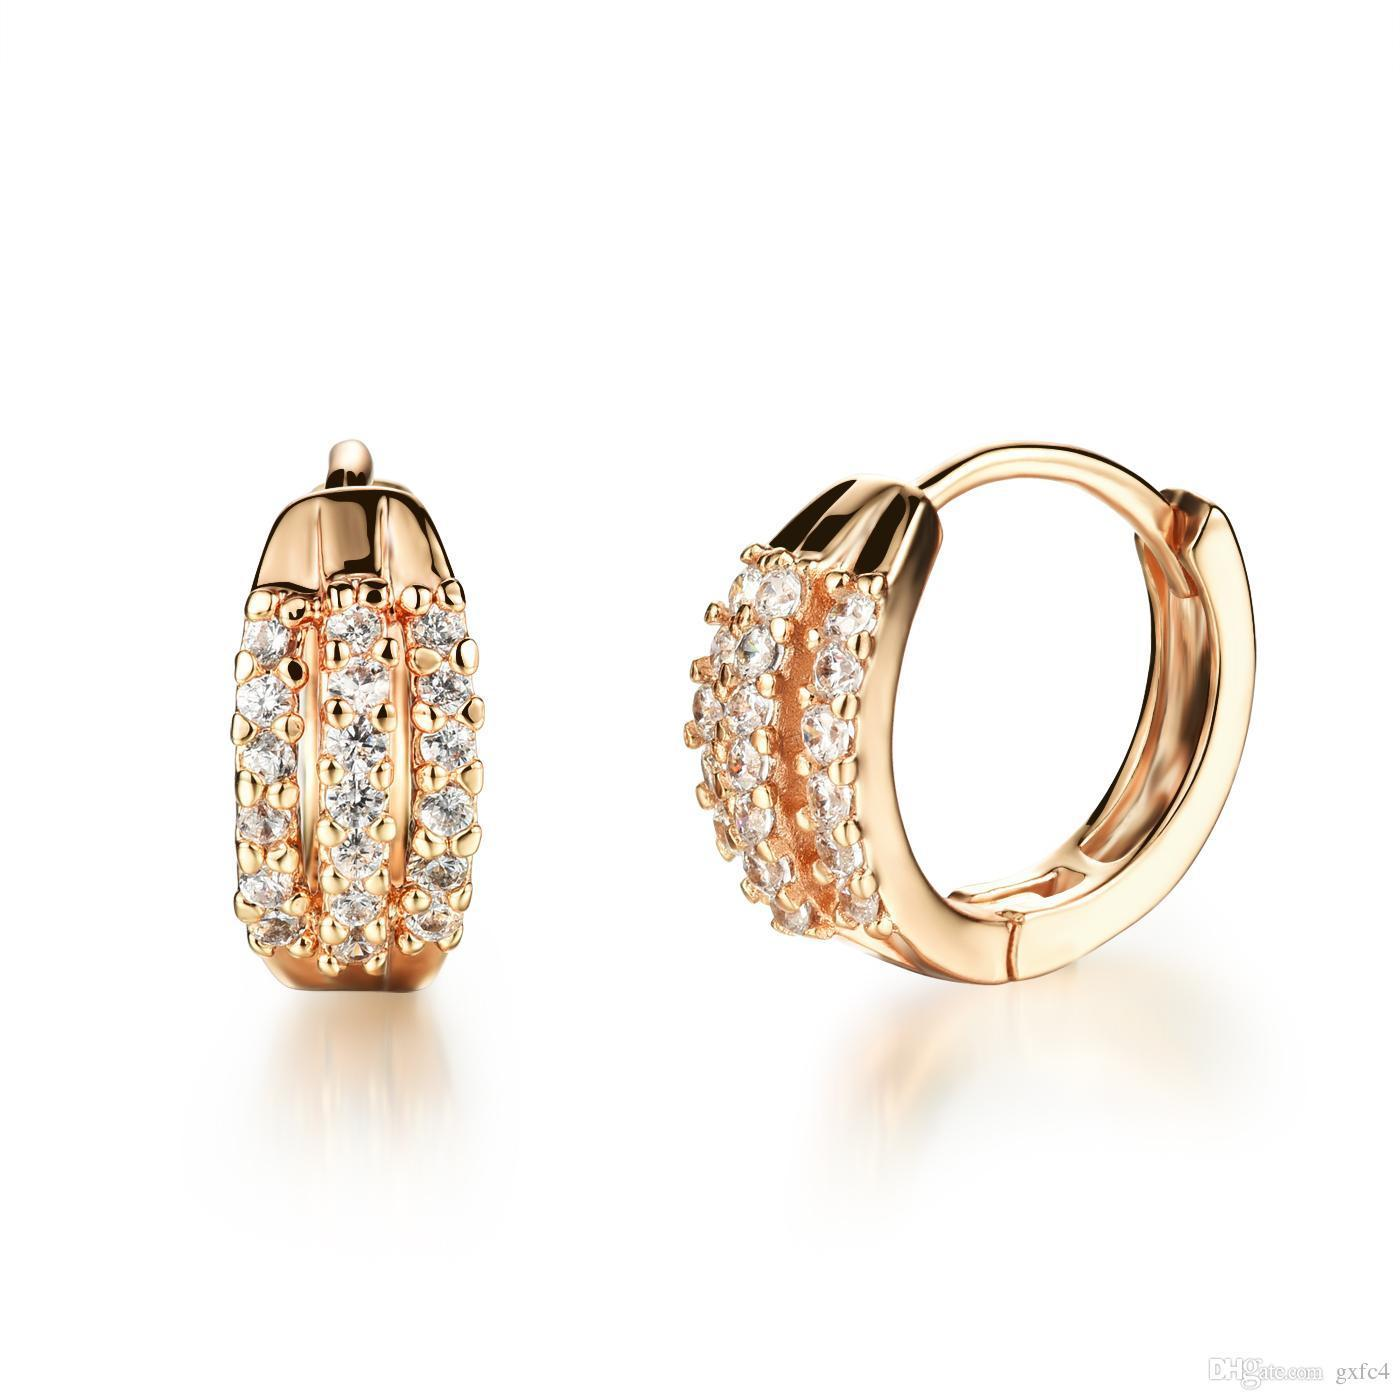 aa986a97e6 New Arrival Fashion Jewelry Women's Accessories Gold Plated Micro Inlay CZ  Diamond Hoop Earrings Classic Gift for Girl KDE655